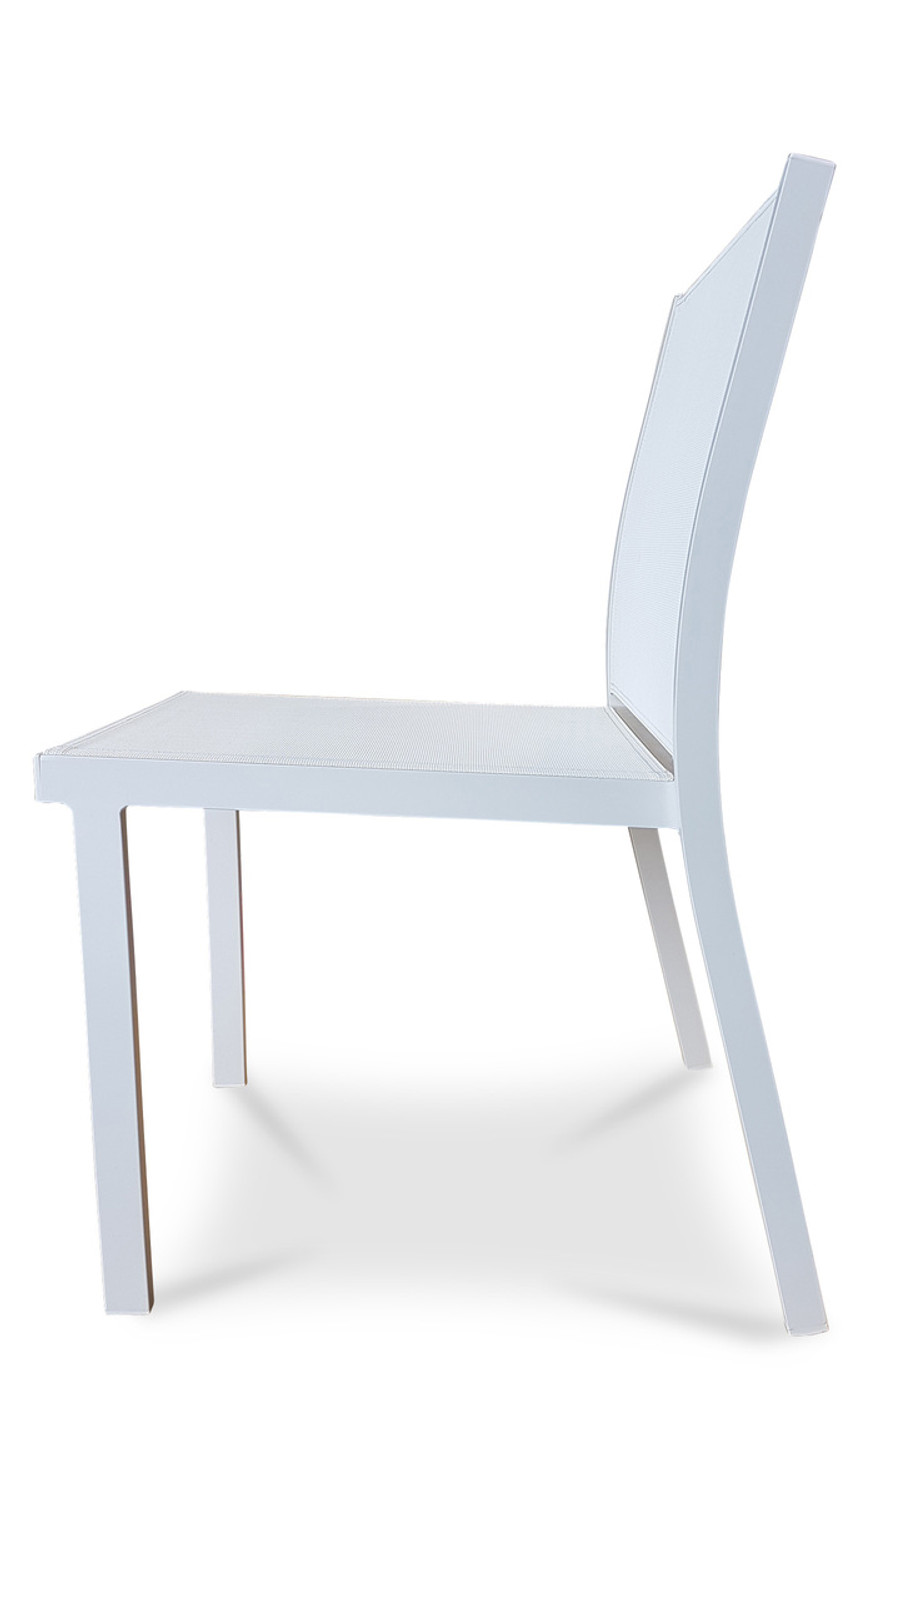 Dining Chair Basik - Textilene Sling - Charcoal And White